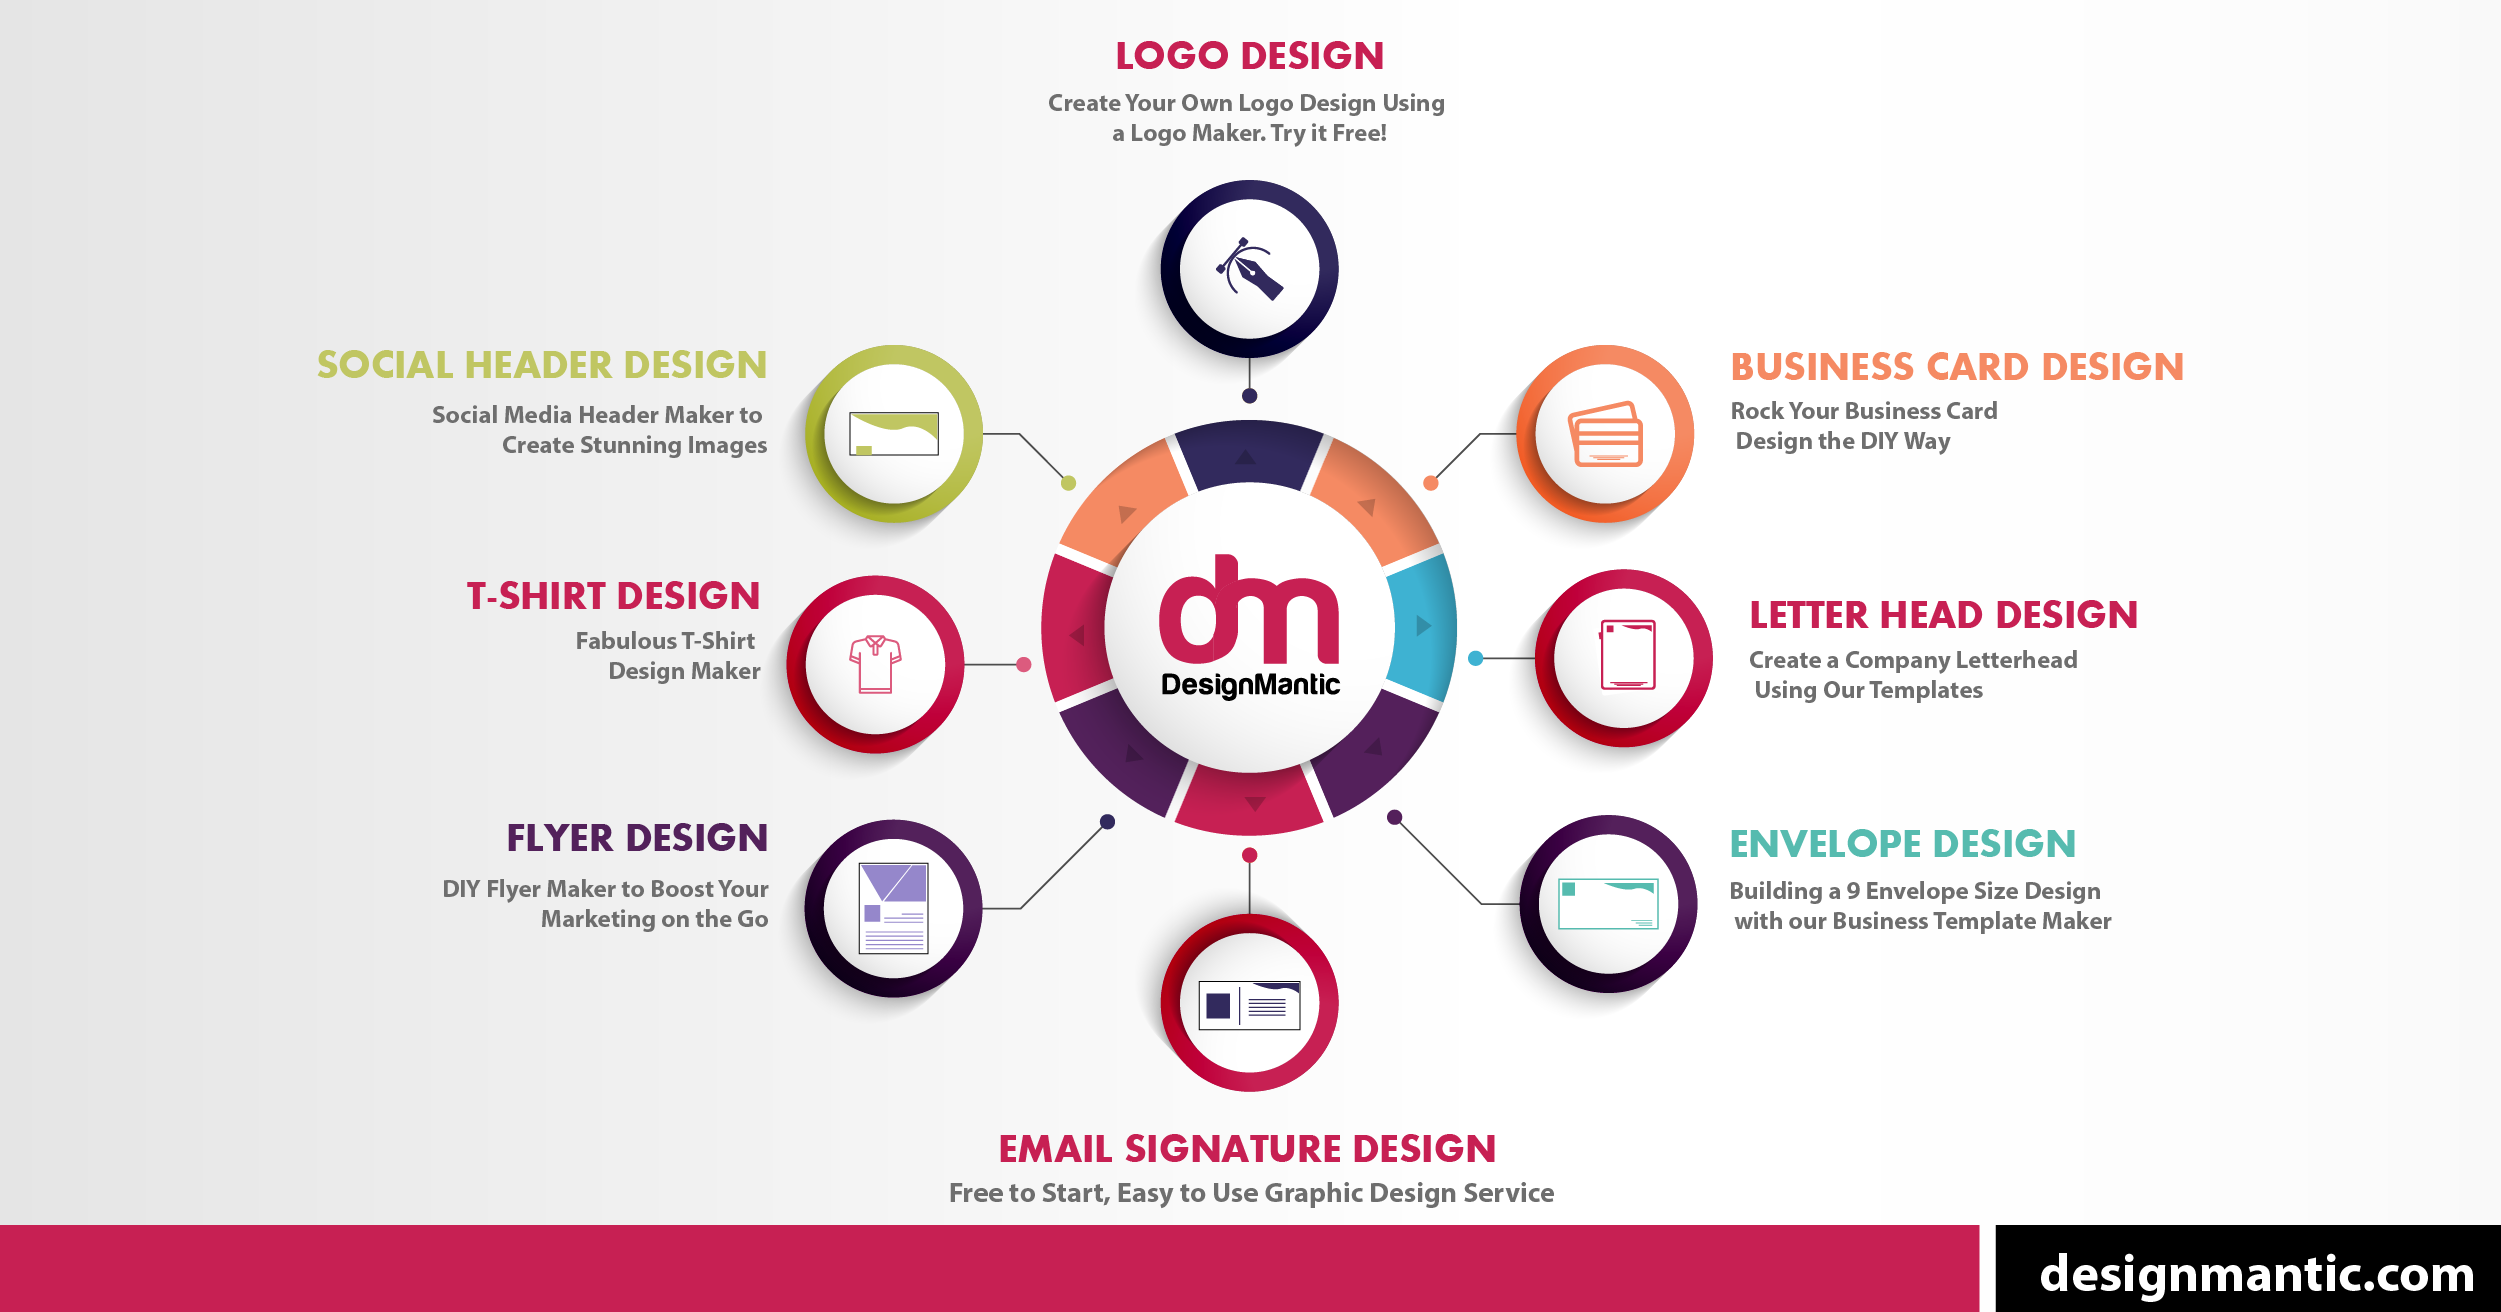 7967f564 Graphic Design Software & Logo Tool | DesignMantic: The Design Shop